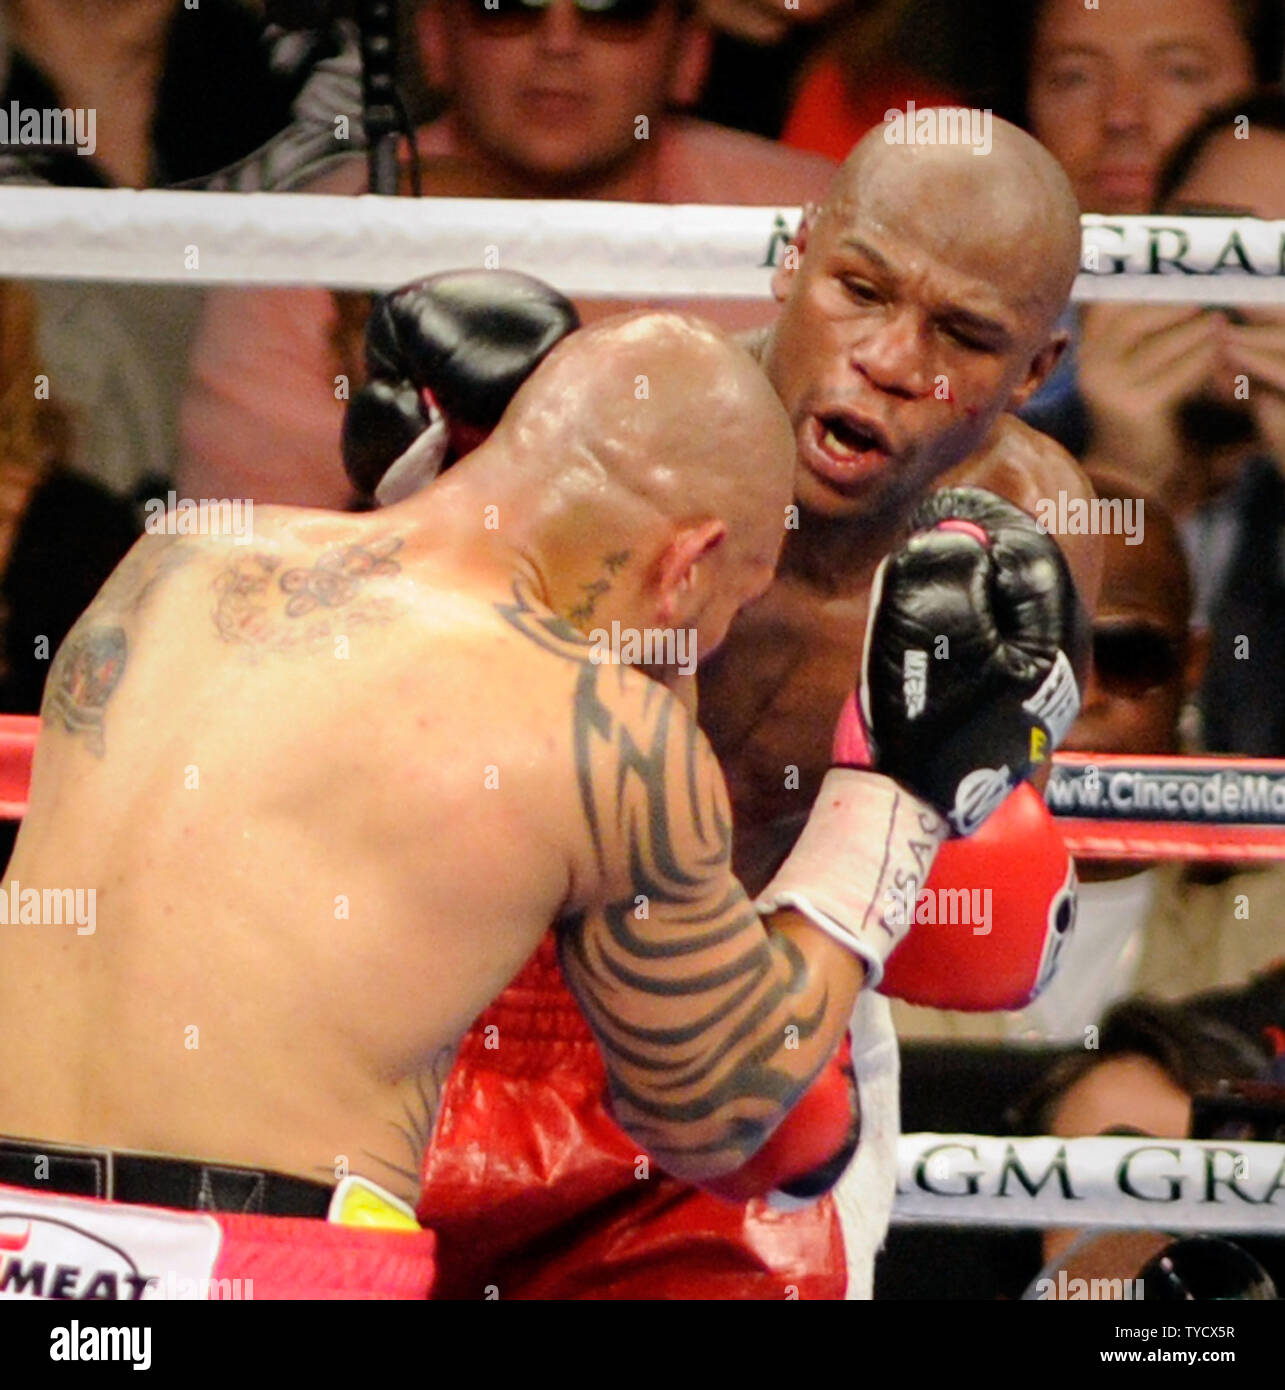 Miguel Cotto, left, and Floyd Mayweather Jr. battle it out during their WBA super welterweight title fight at the MGM Grand Garden Arena in Las Vegas, Nevada on May 5, 2012.  Mayweather defeated Cotto in an unanimous decision after 12 rounds. UPI/David Becker Stock Photo